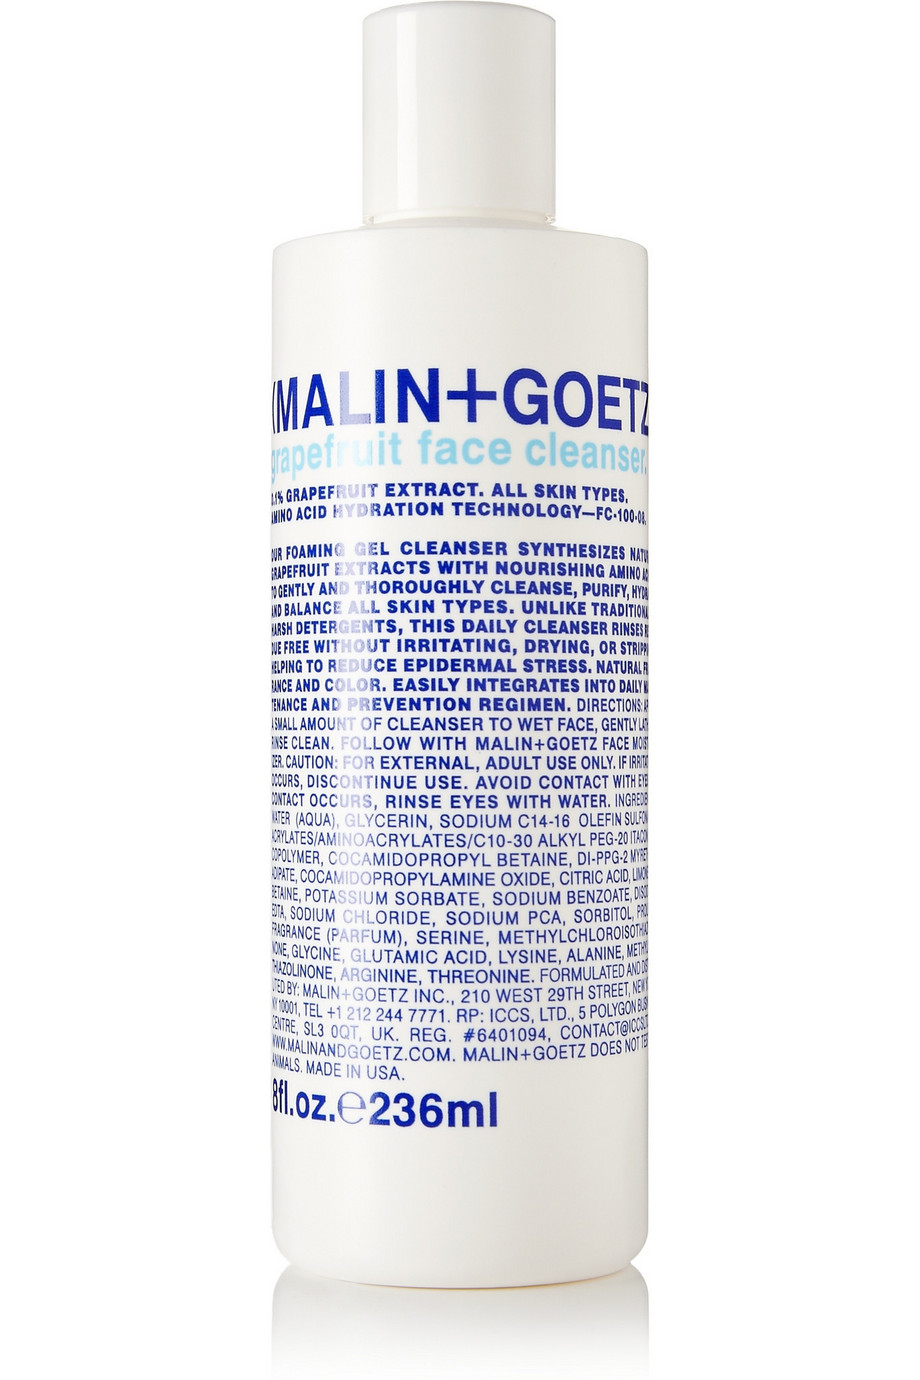 Grapefruit Face Cleanser, 236ml, by Malin + Goetz